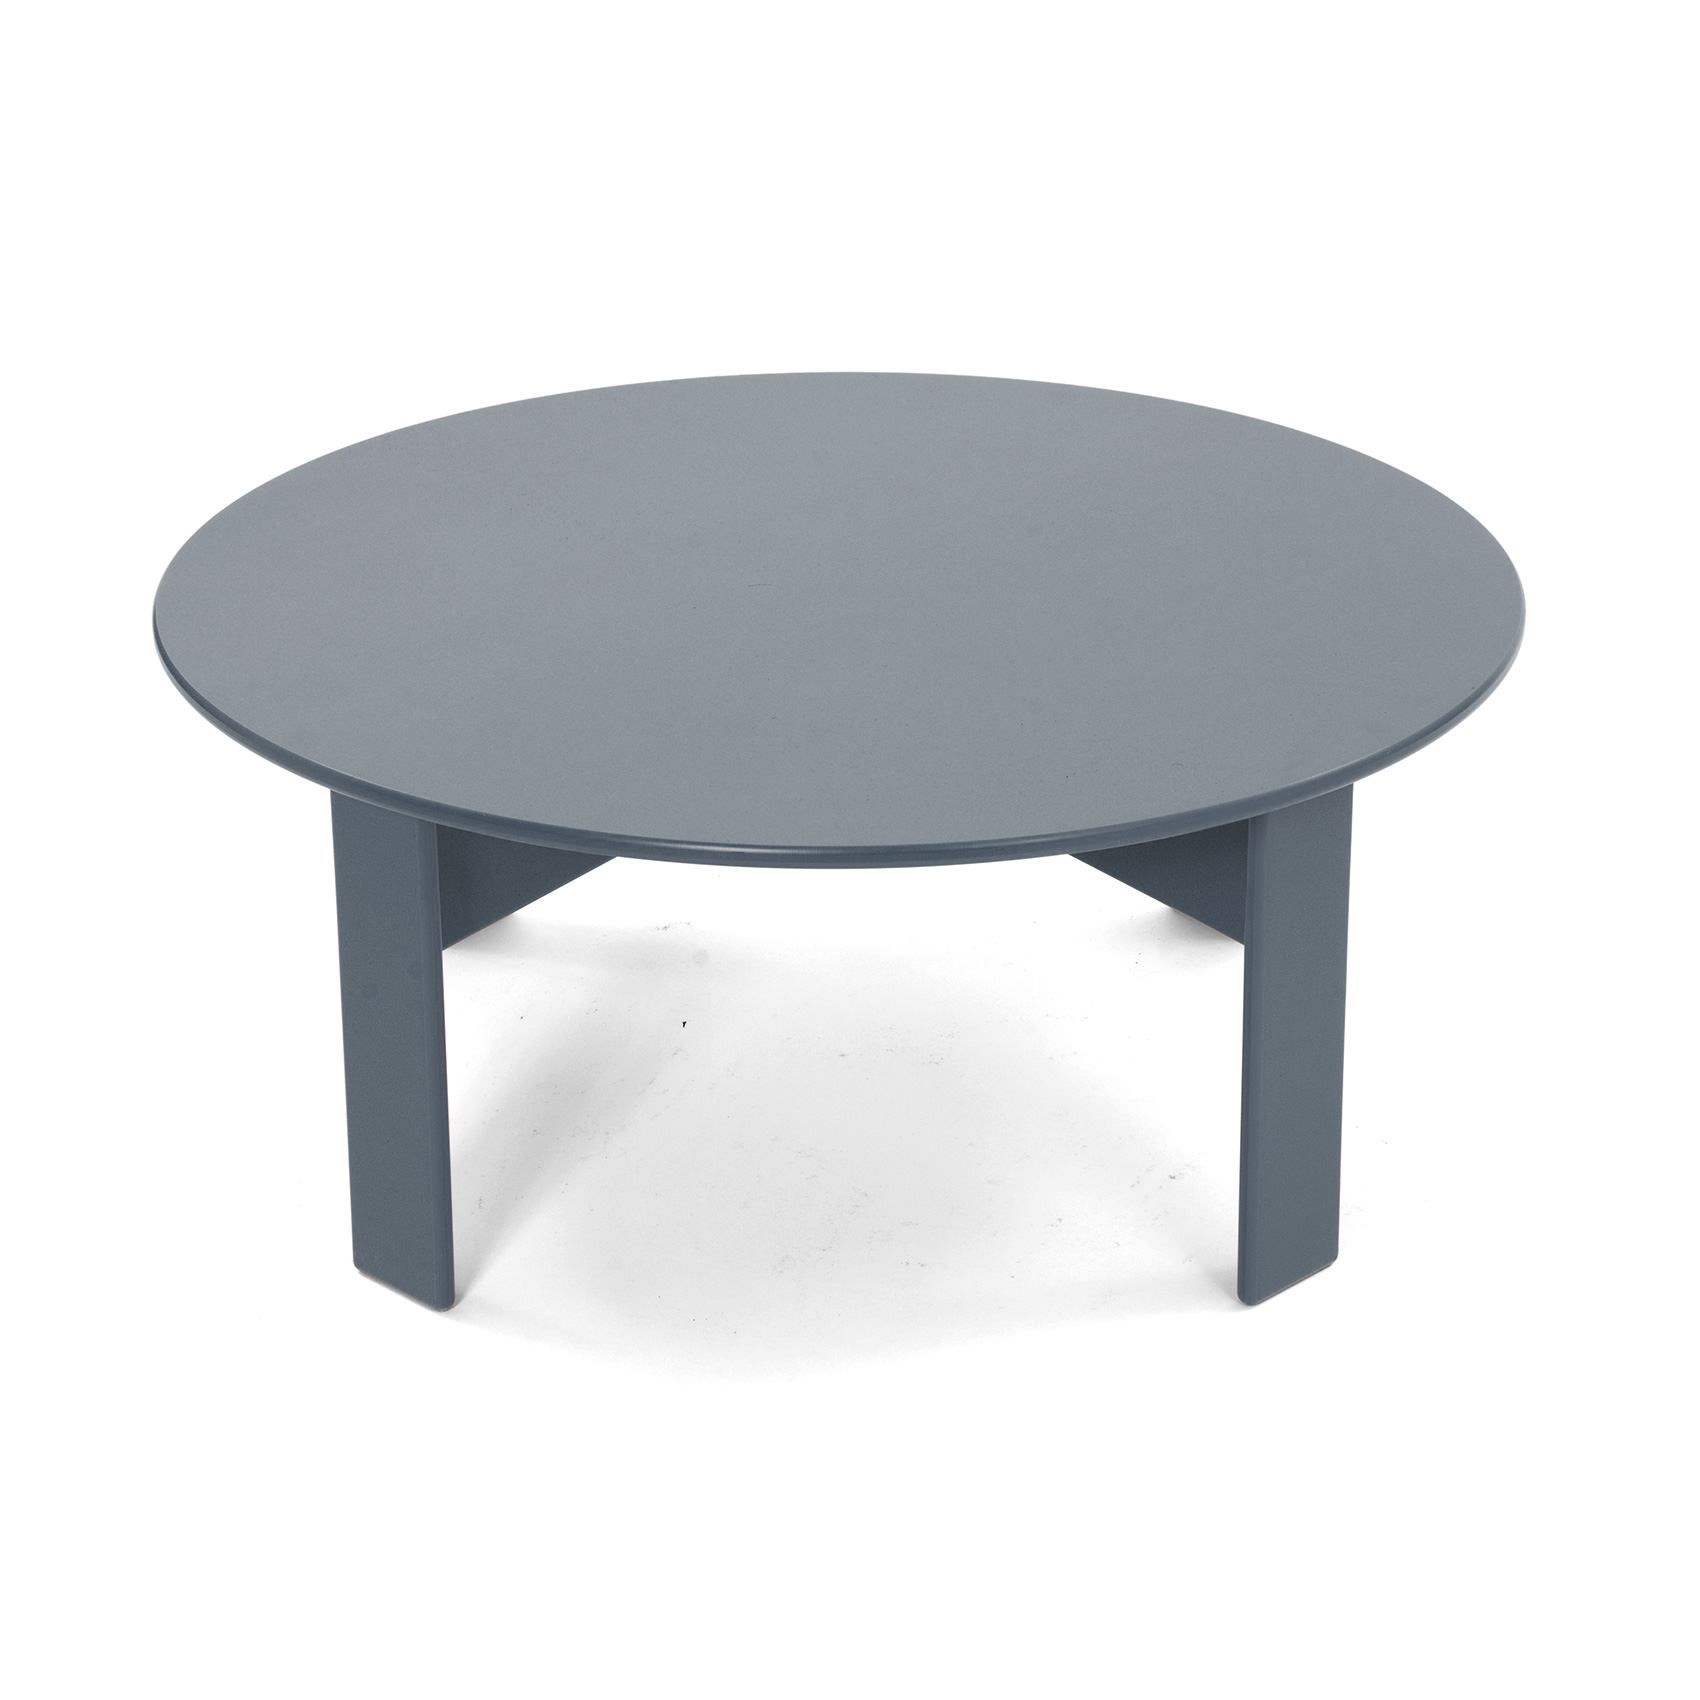 folding outdoor side table beacon park steel wicker accent patio coffee with storage tables modern ideas round black drum small narrow end light grey rug tiffany tree lamp white